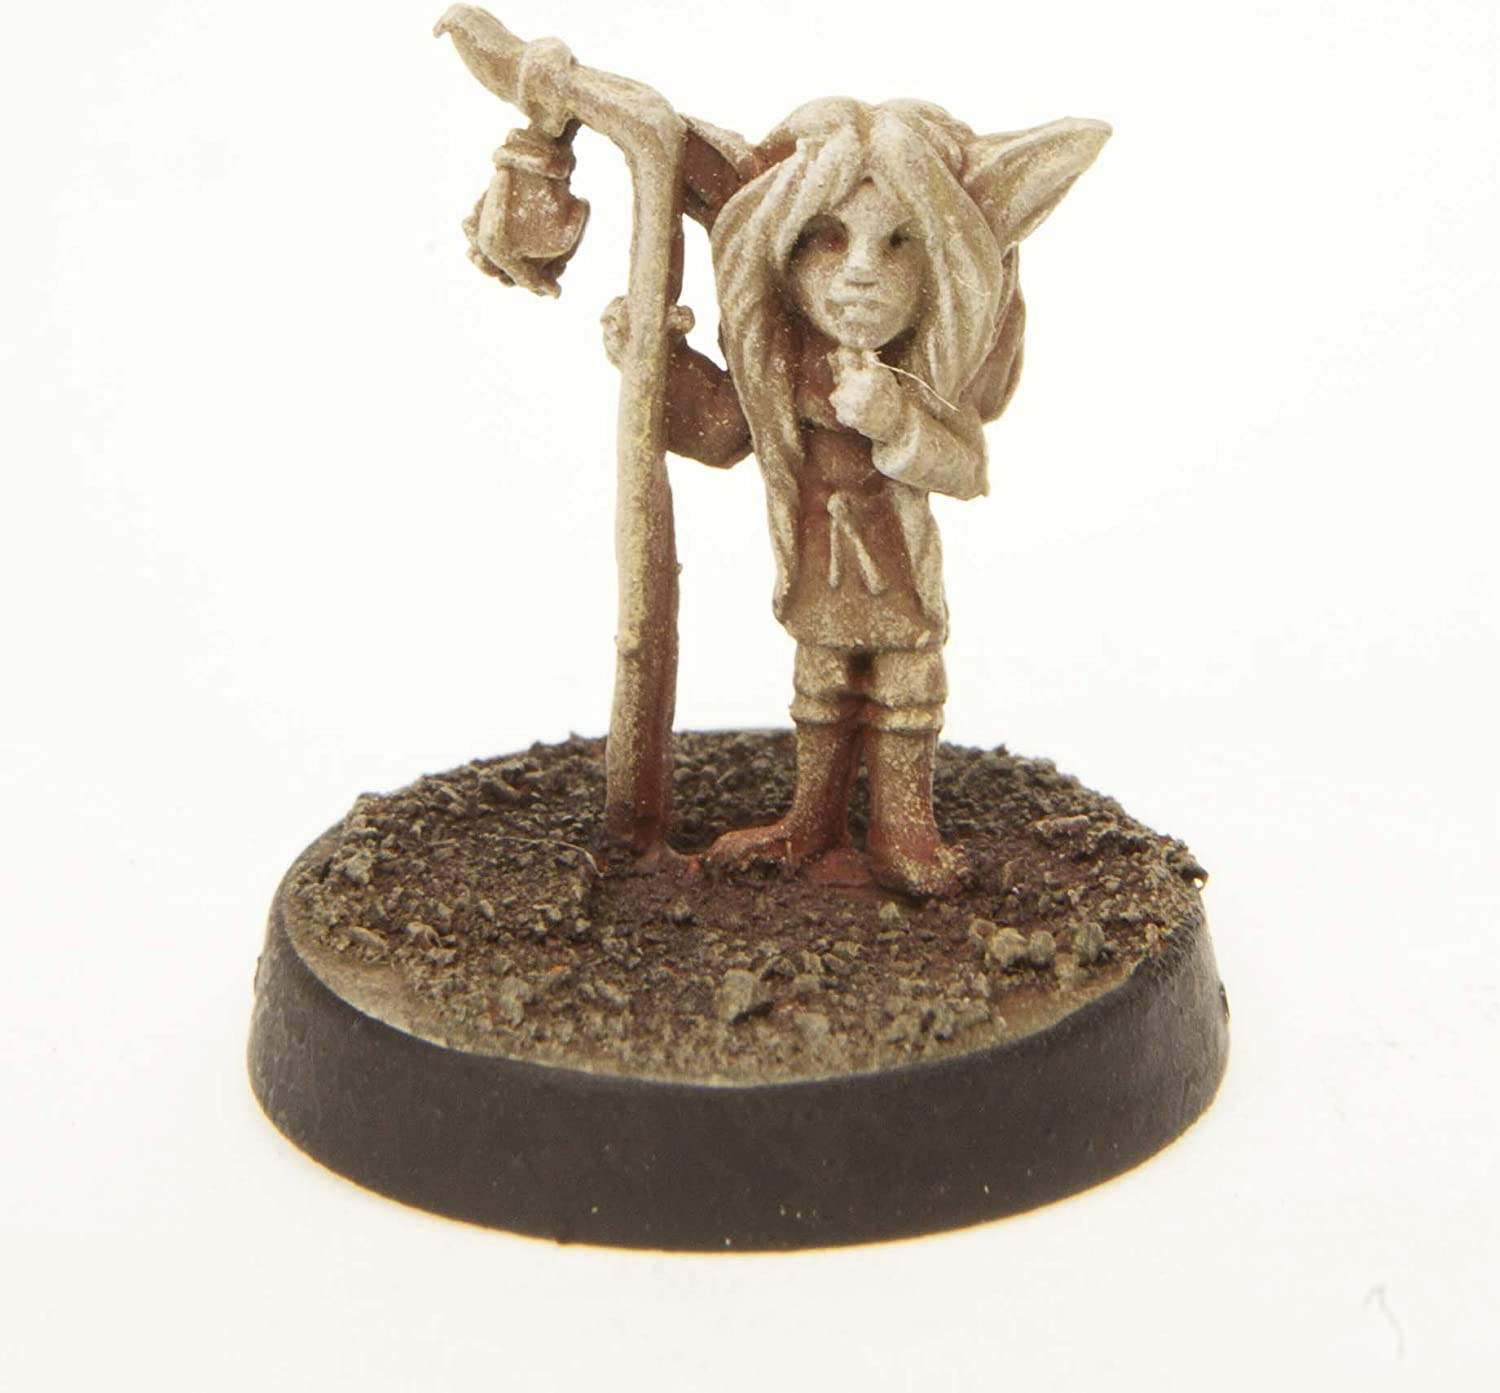 Made in USA Stonehaven Miniatures Stonehaven Gnome Cleric Miniature Figure for 28mm Scale Table Top War Games